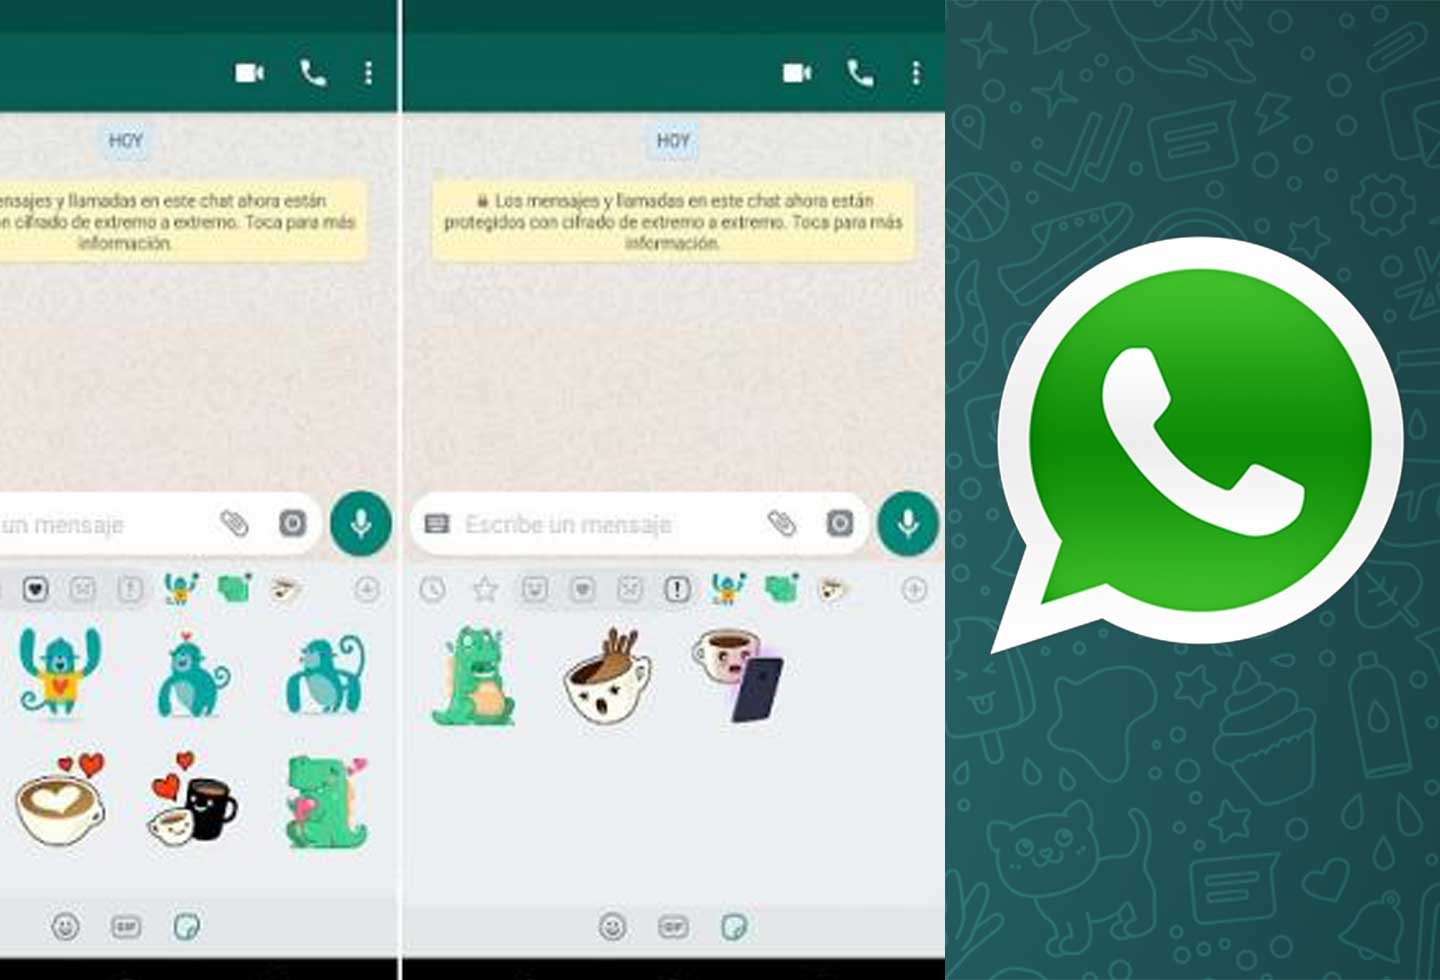 Whatsapp already allows to create custom stickers